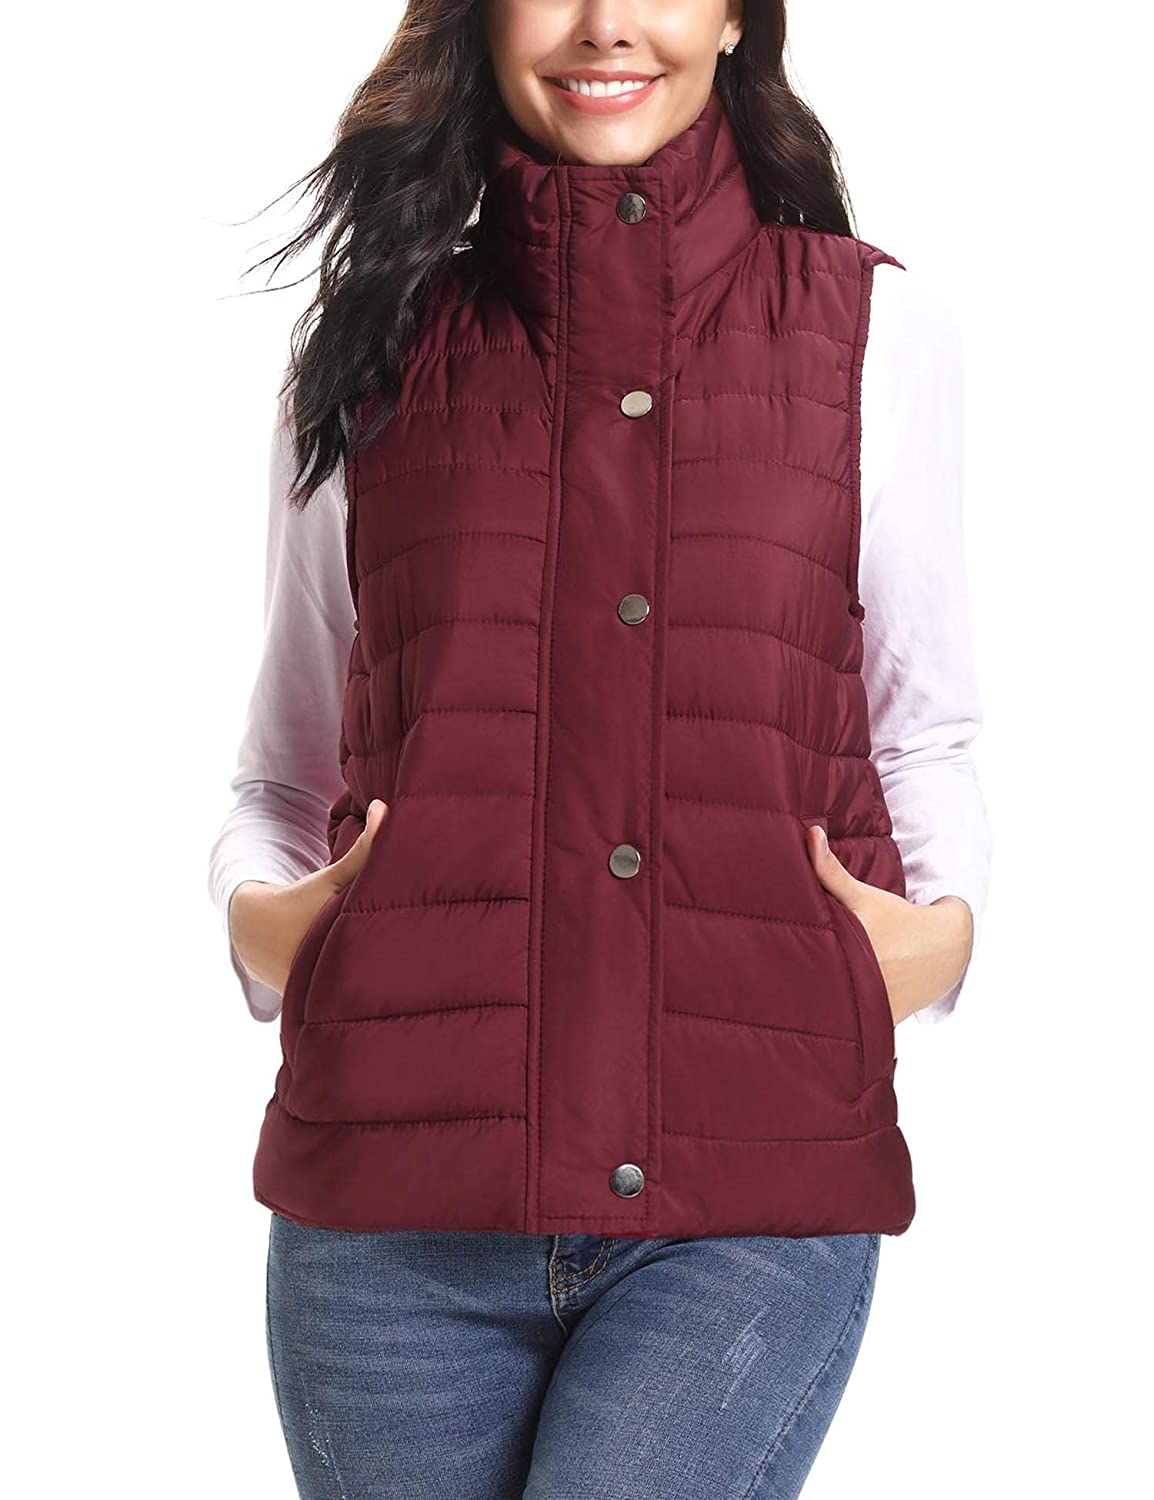 27a350c05 iClosam Women's Winter Puffer Vest Lightweight Packable Down Vest Quilted  Jacket Coat